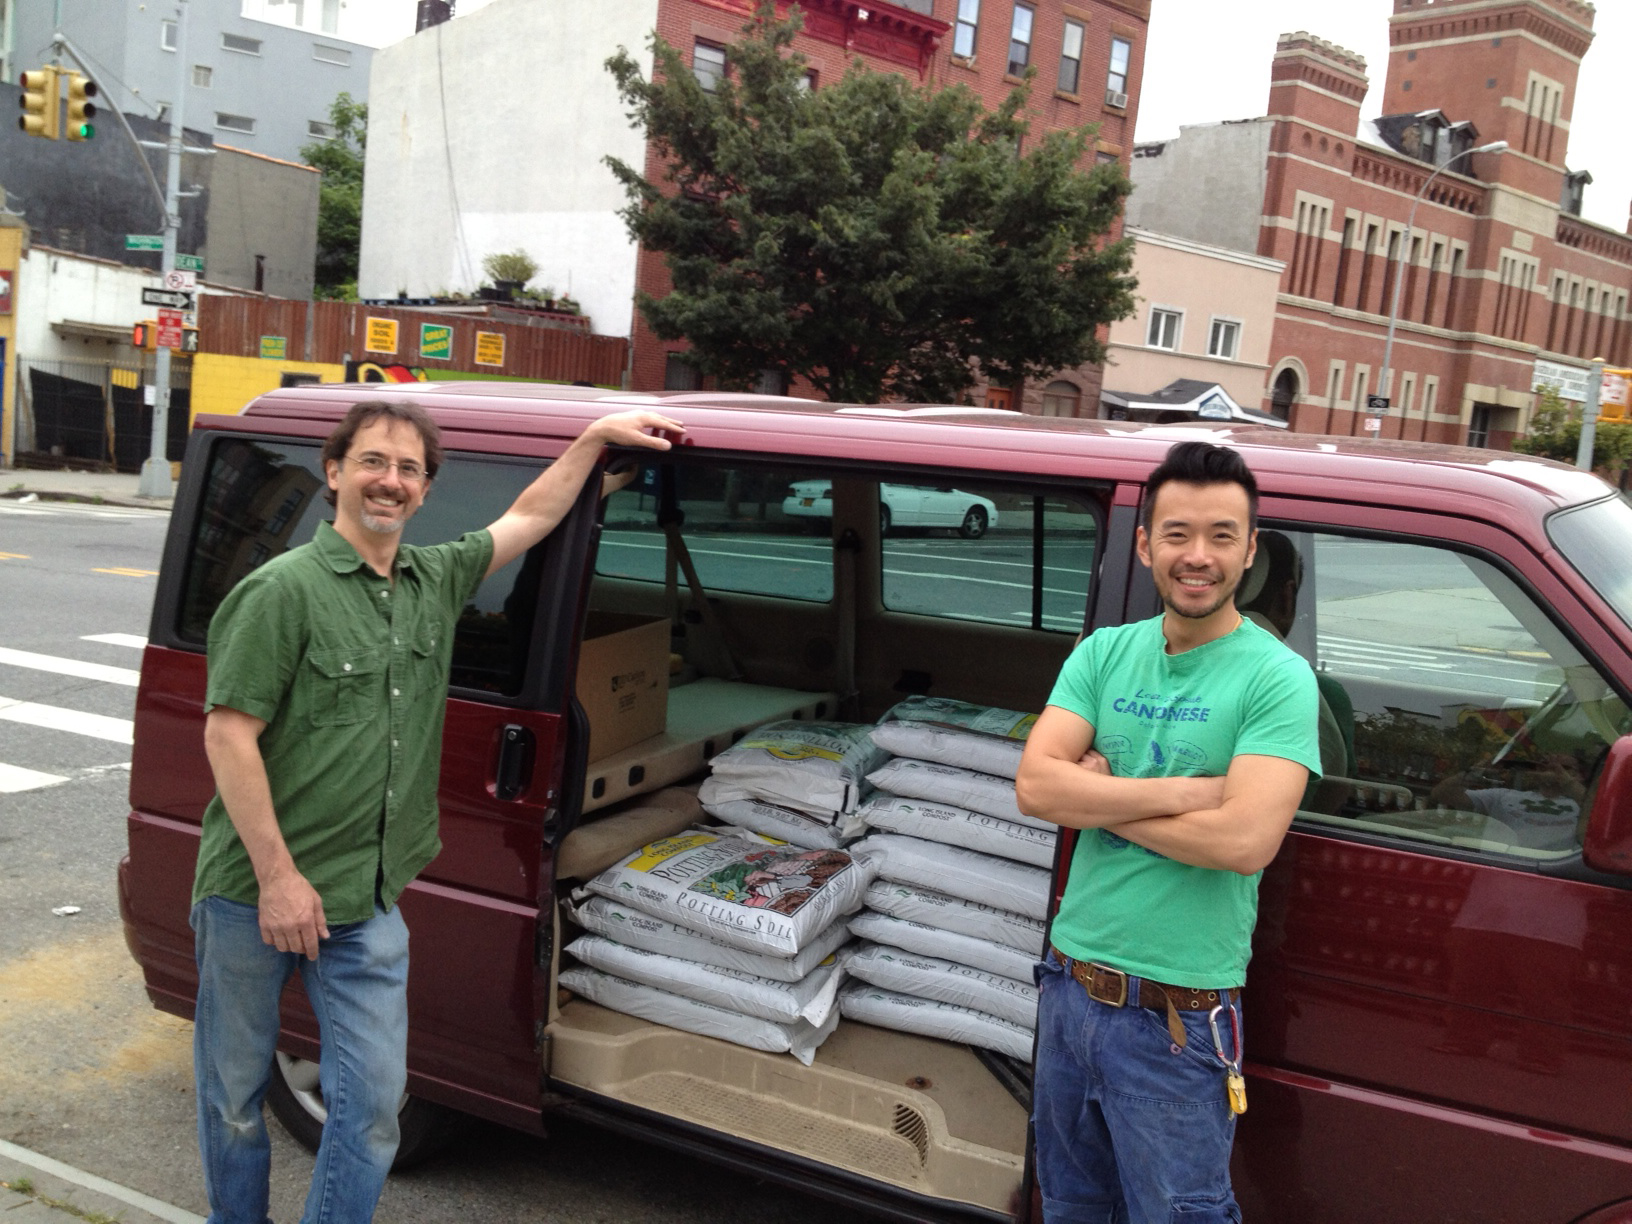 John (Bitters And Ester) And Kenneth (The Winey Neighbor) Picking Up The  Potting Soil From Natty Garden And Distribute Them To Designated Tree Pits.